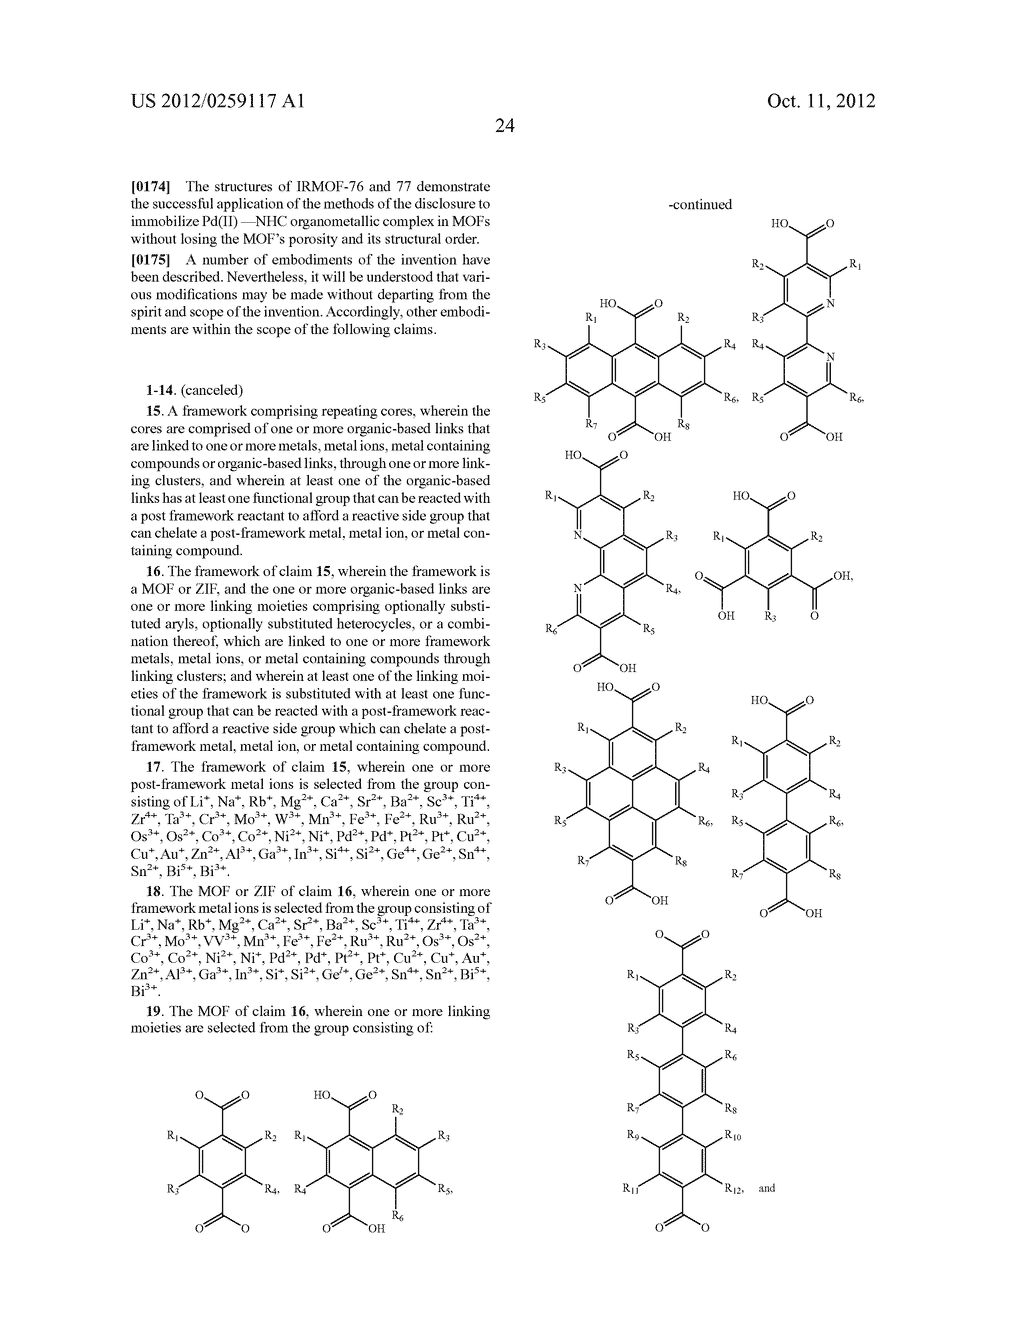 ORGANO-METALLIC FRAMEWORKS AND METHODS OF MAKING SAME - diagram, schematic, and image 43